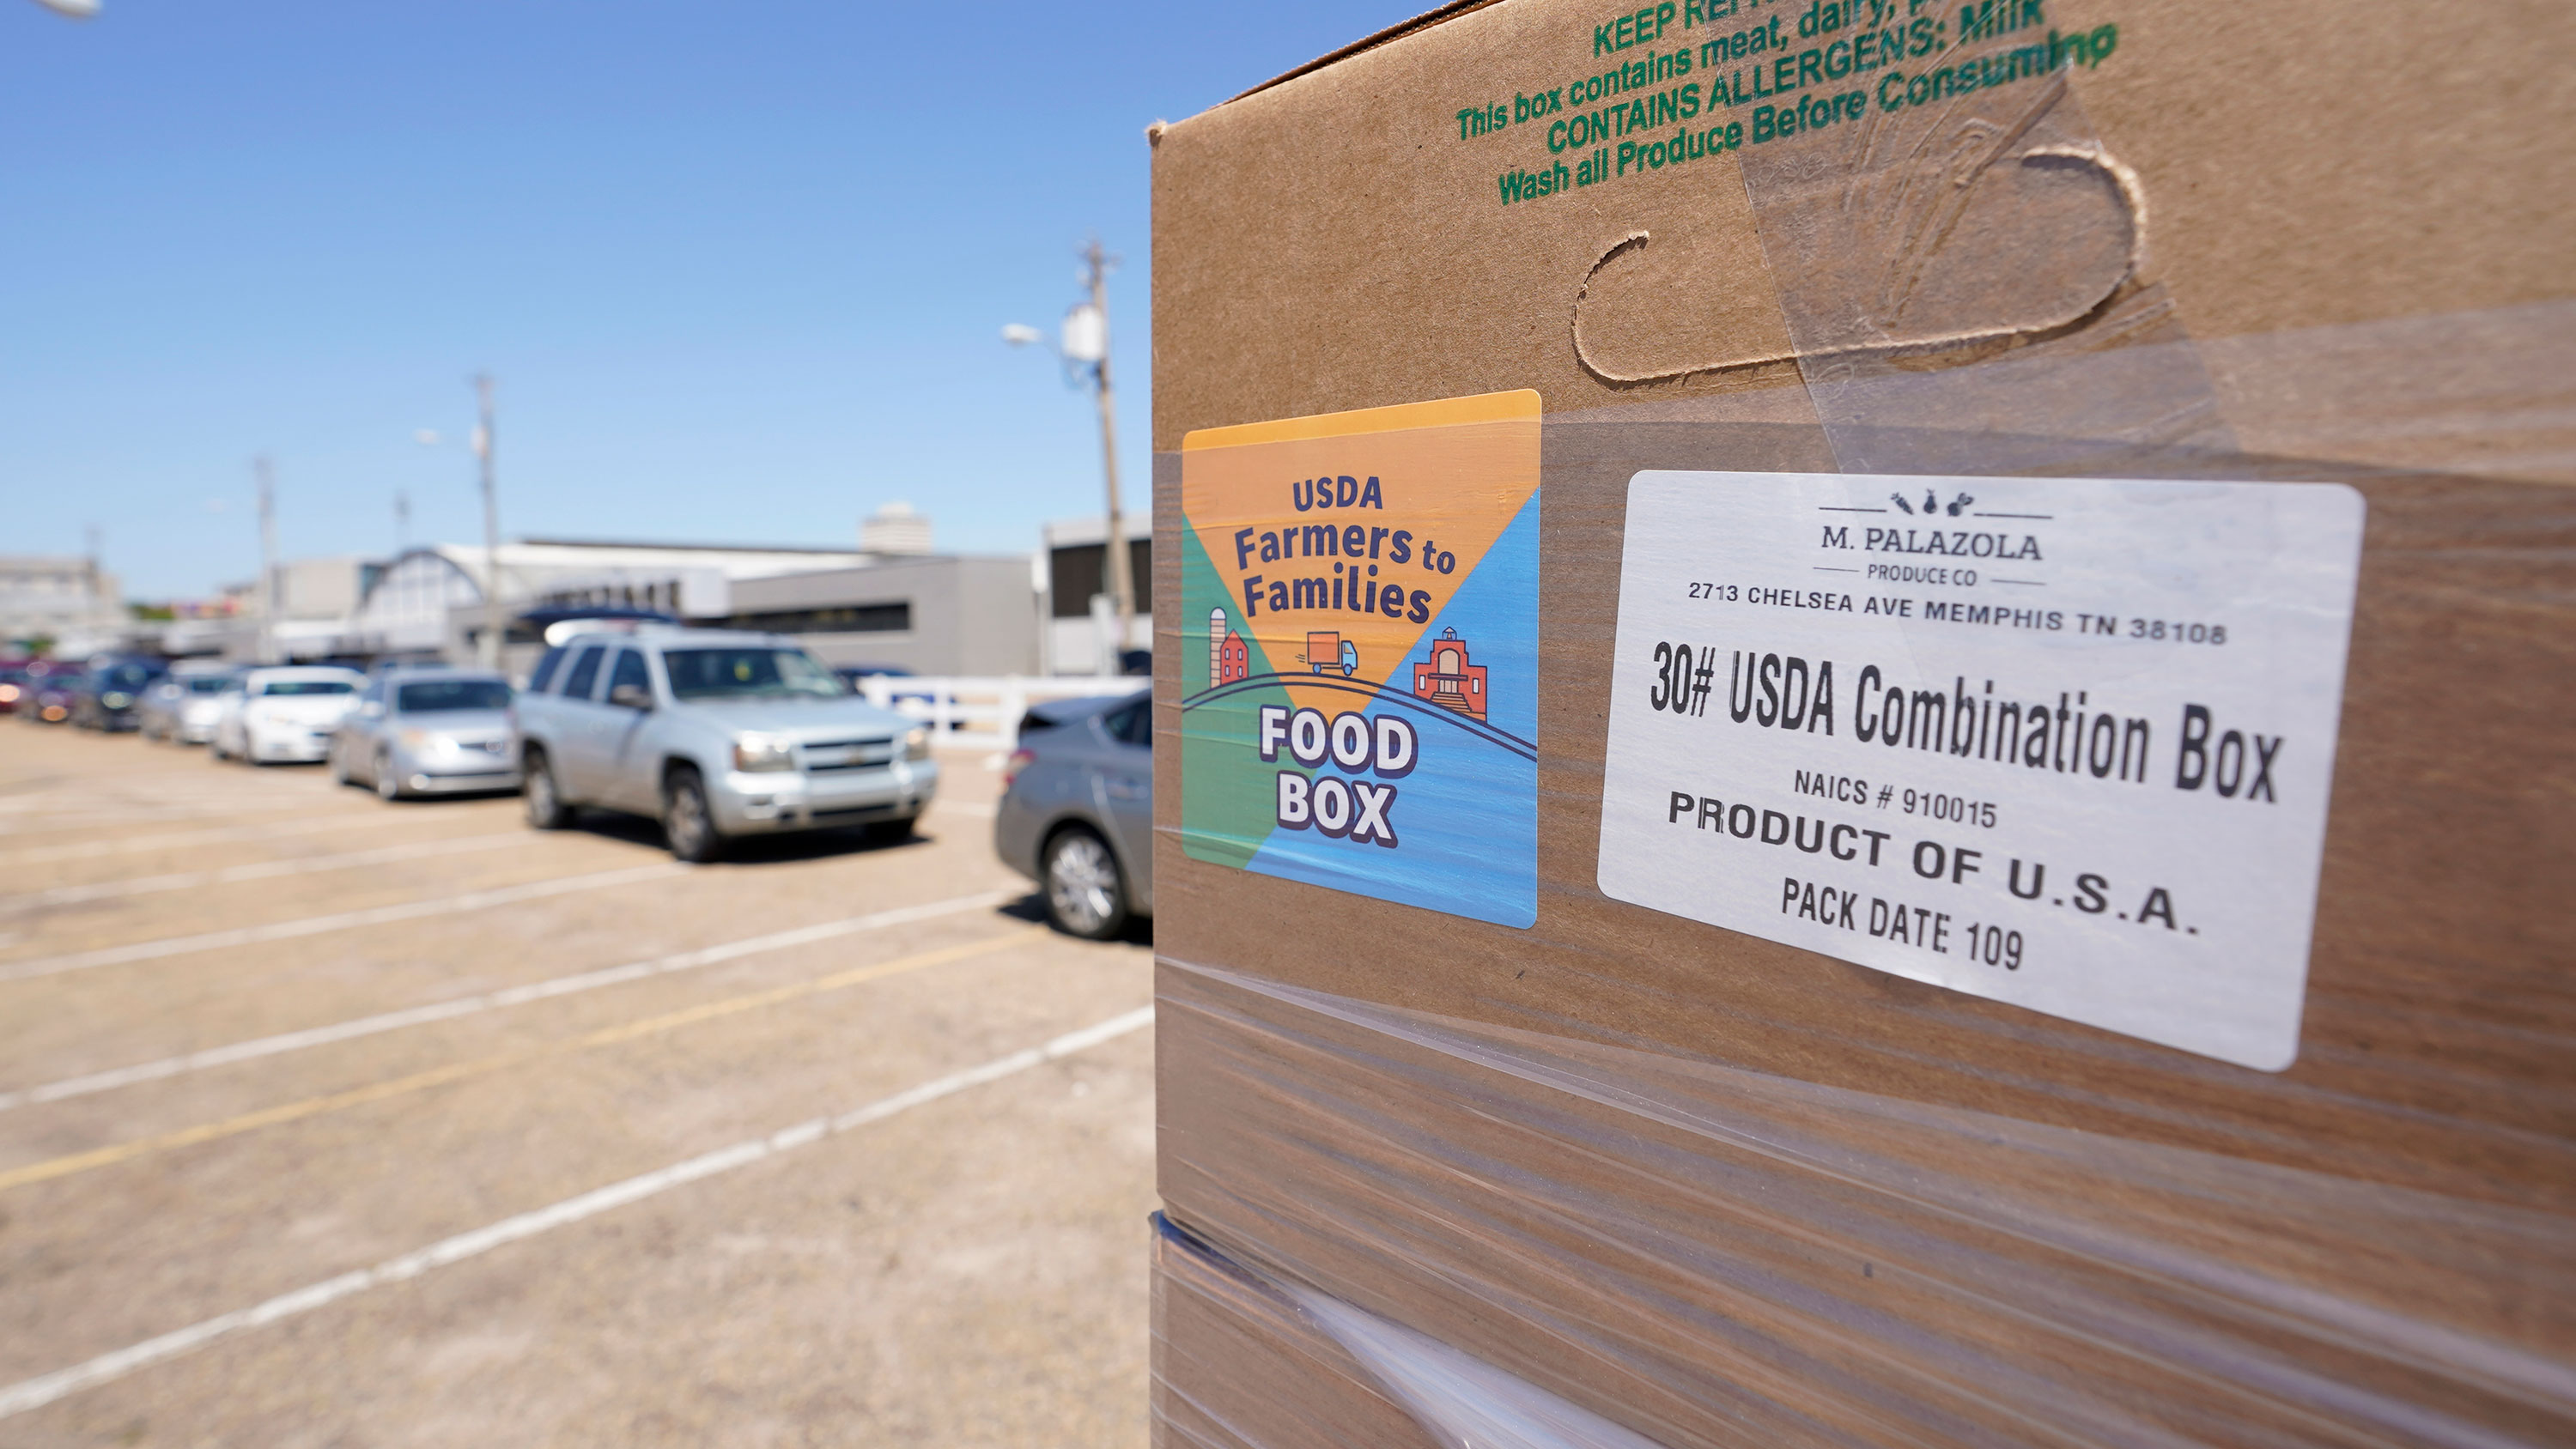 Biden administration winds down Trump's pandemic food box program